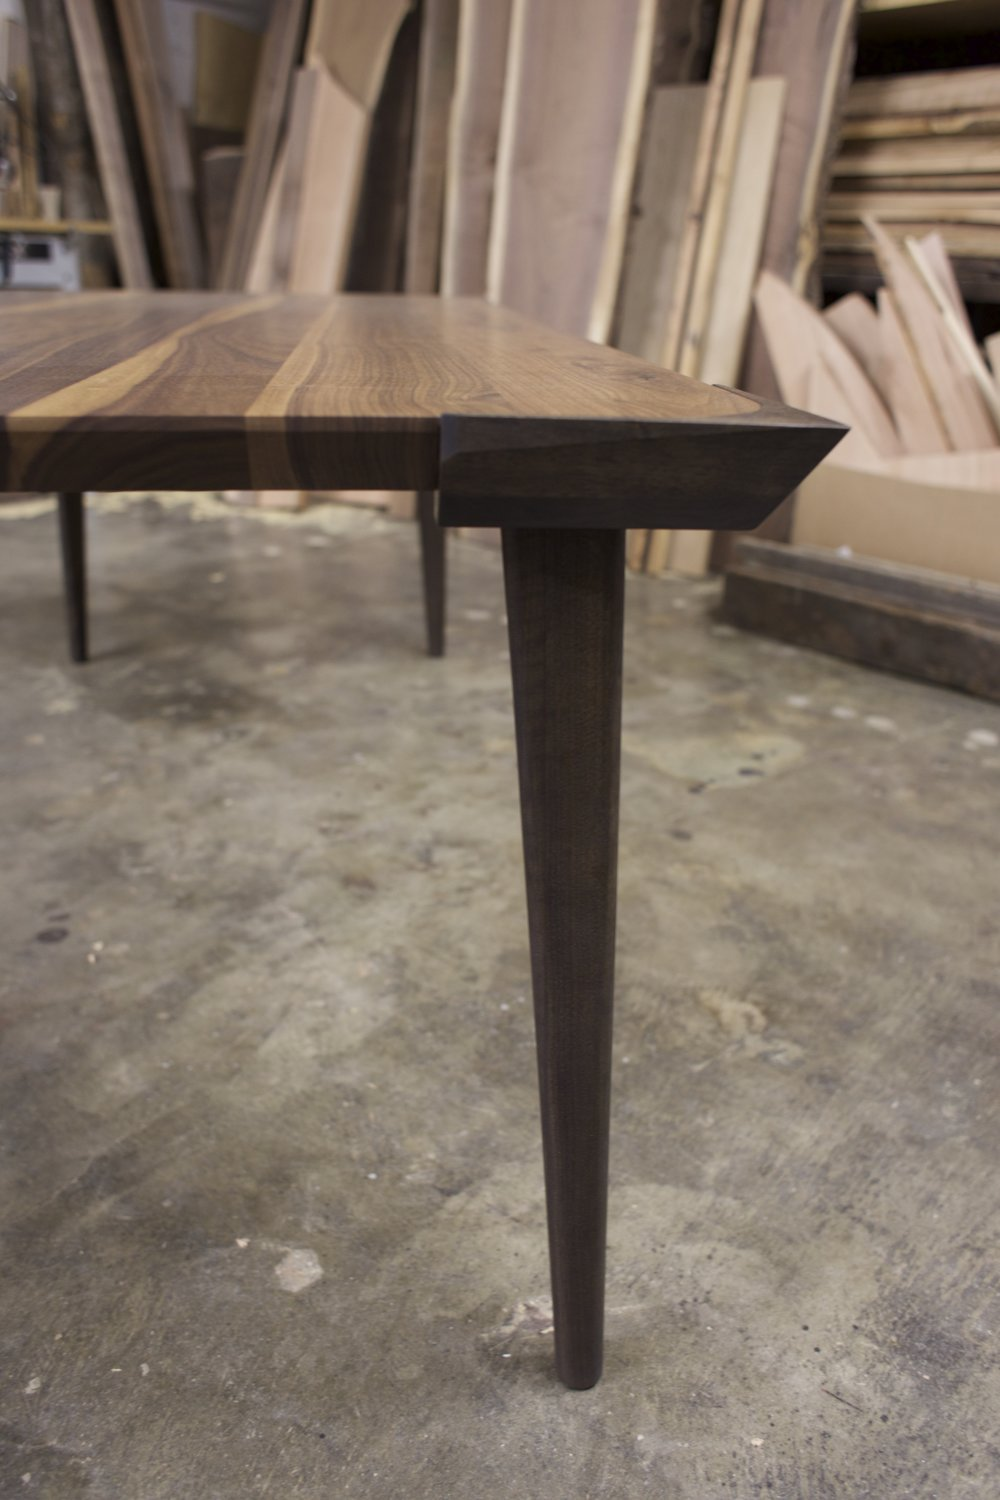 Walnut dining table - Side view